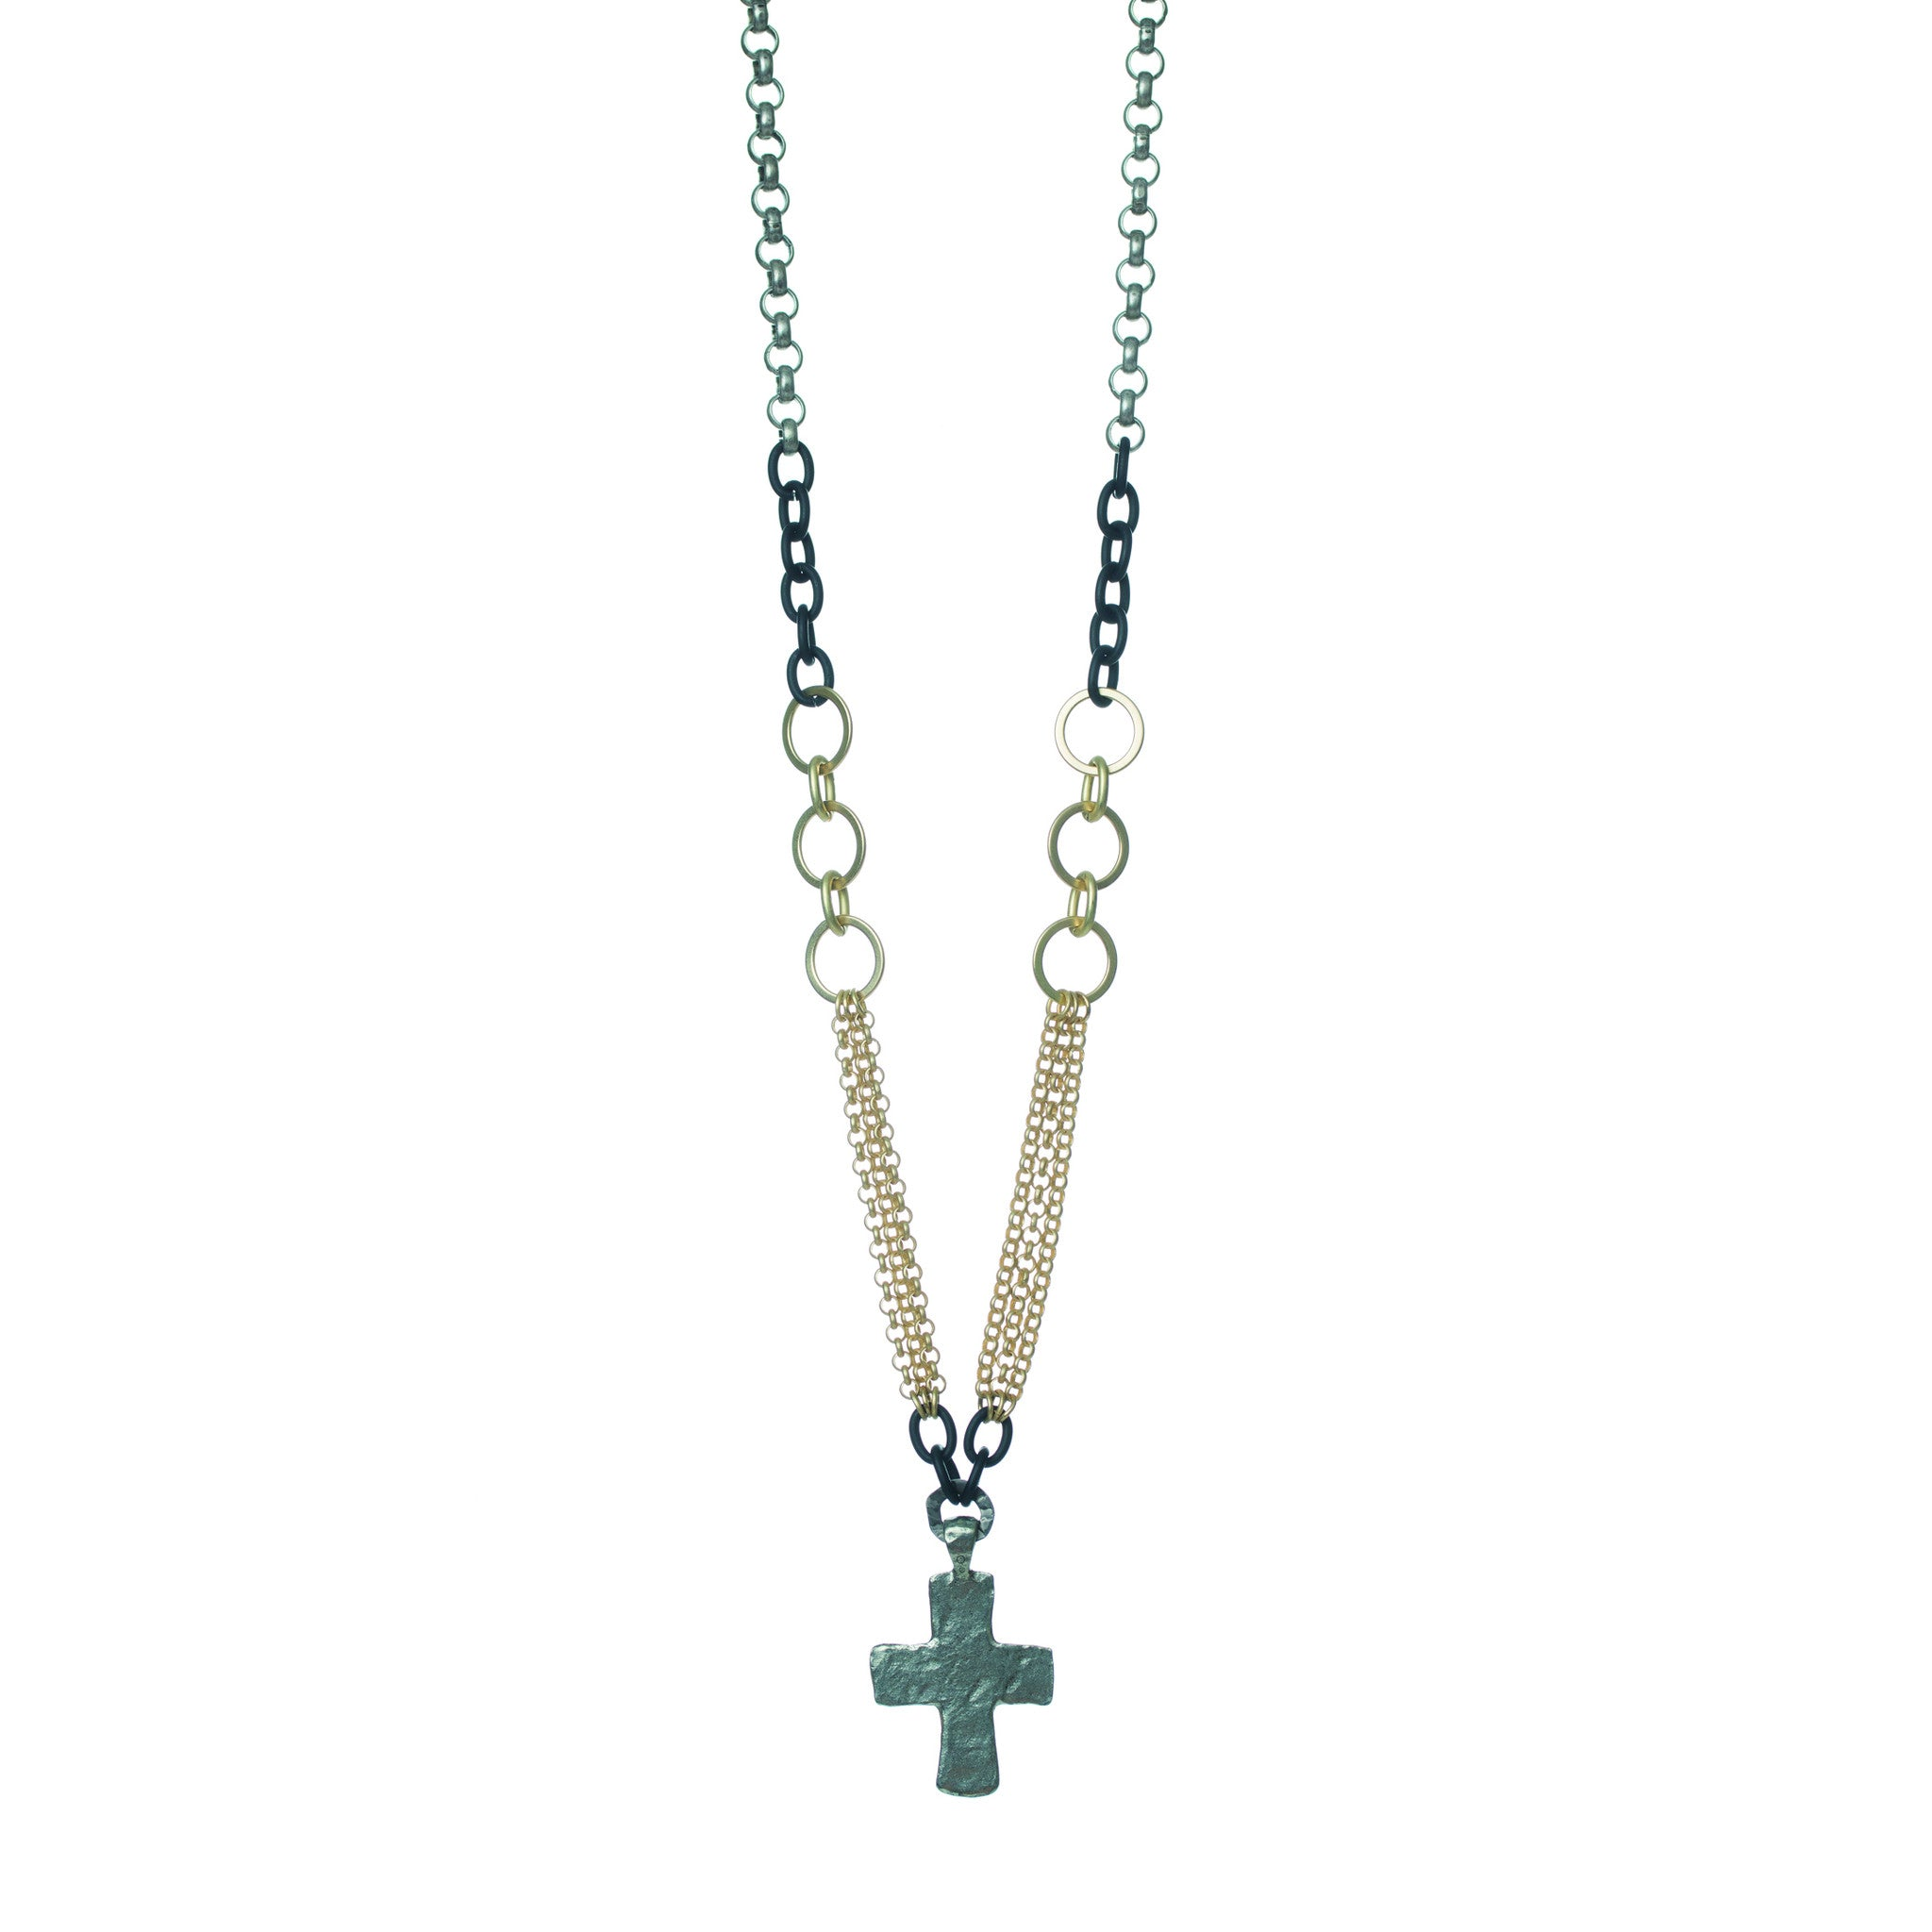 SILVER CROSS AND MIXED METAL NECKLACE